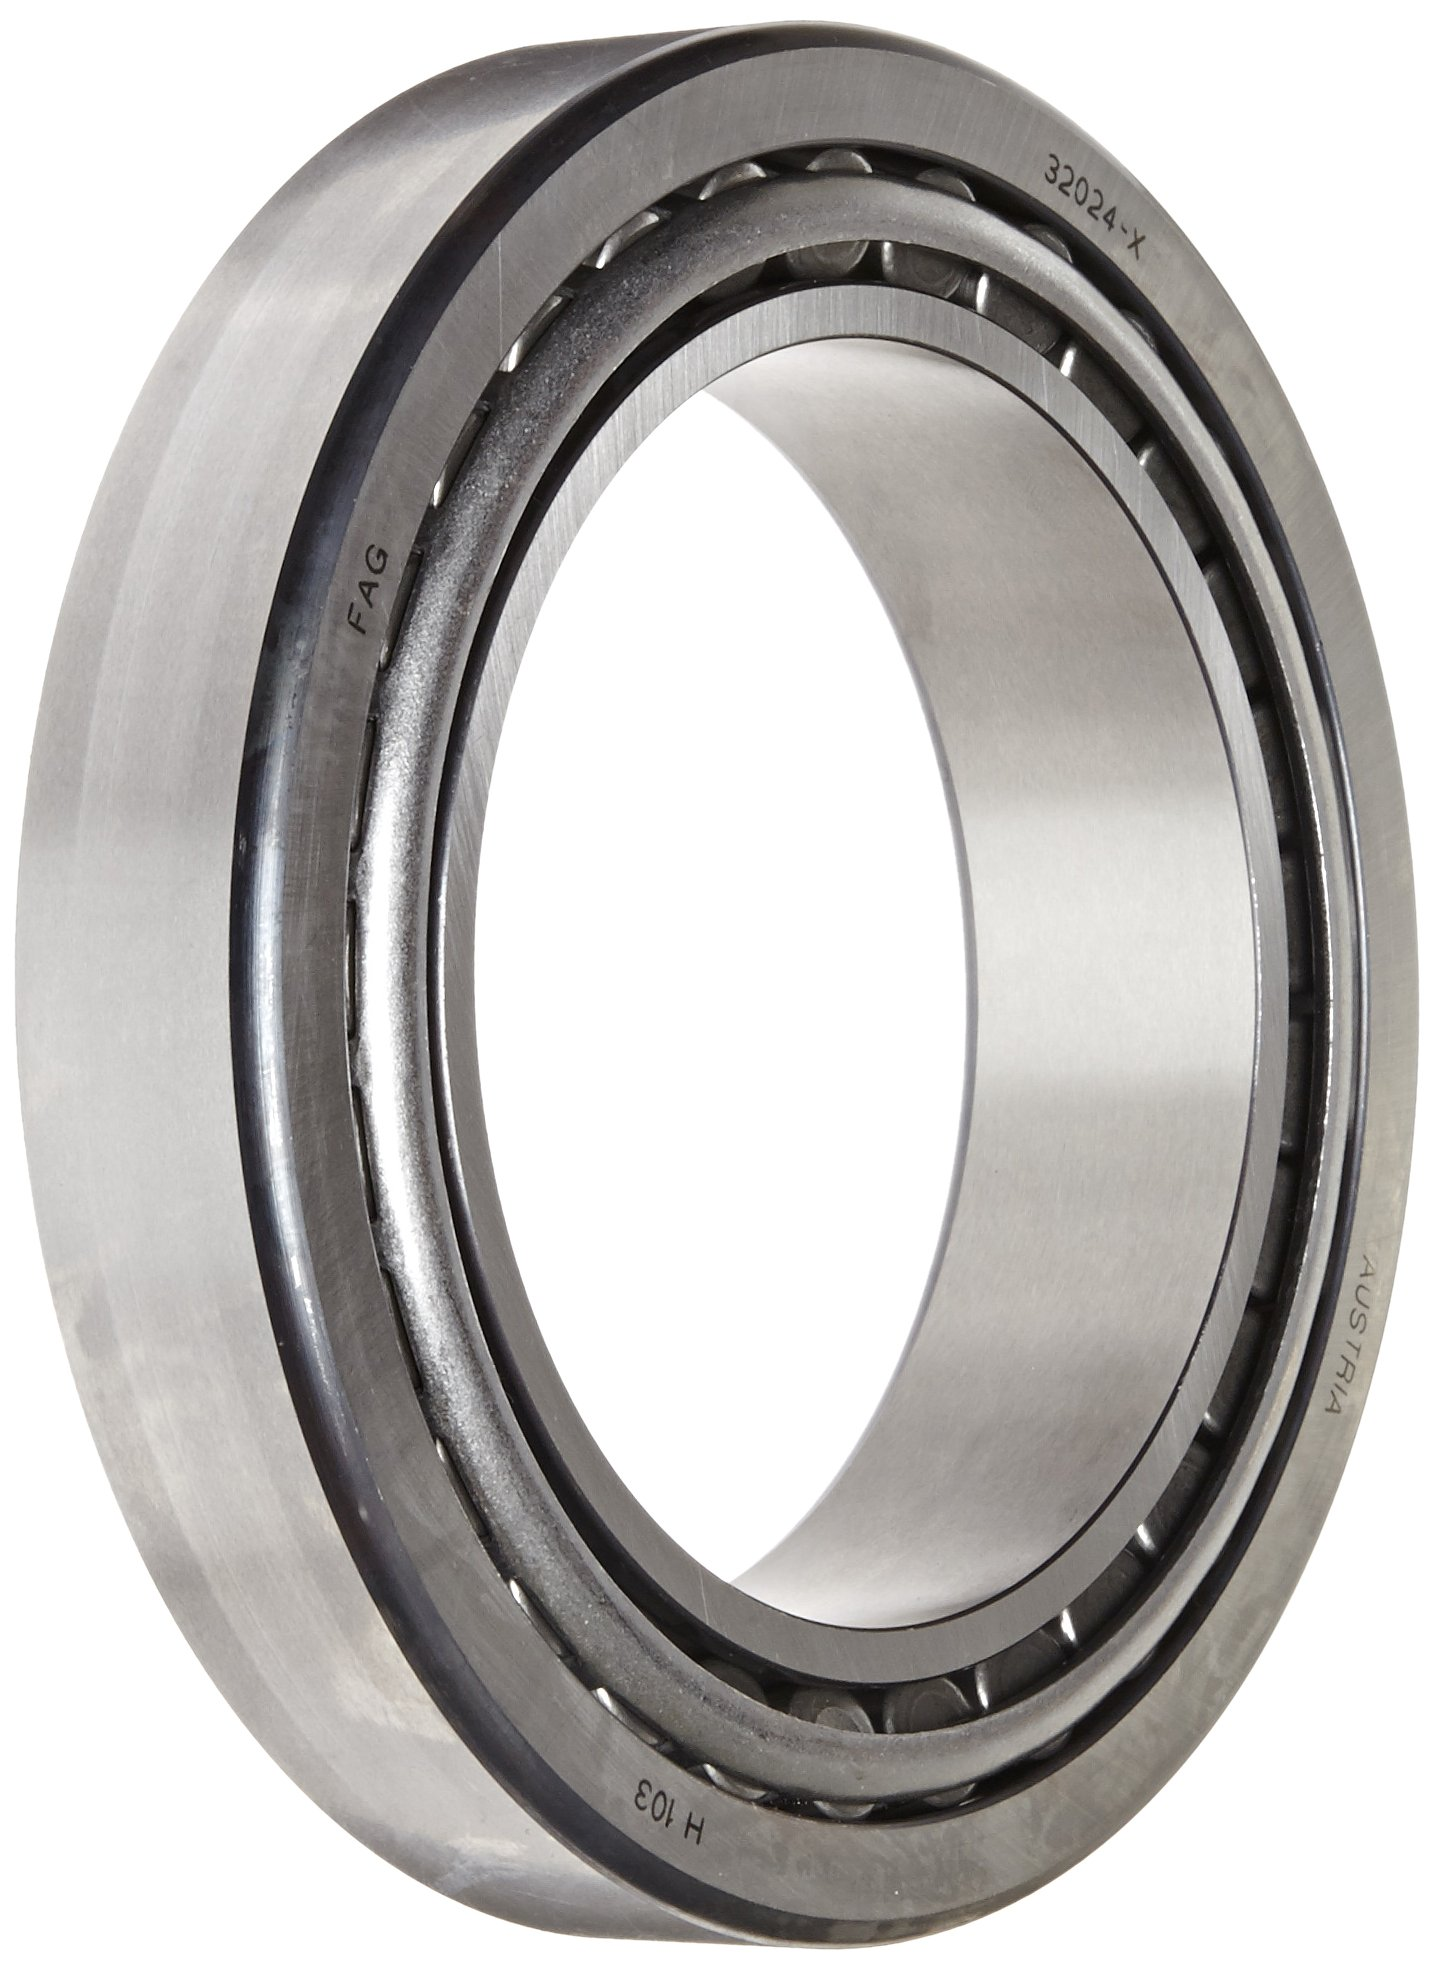 FAG 32024X Tapered Roller Bearing Cone and Cup Set, Standard Tolerance, Metric, 120 mm ID, 180mm OD, 38mm Width, 3600rpm Maximum Rotational Speed